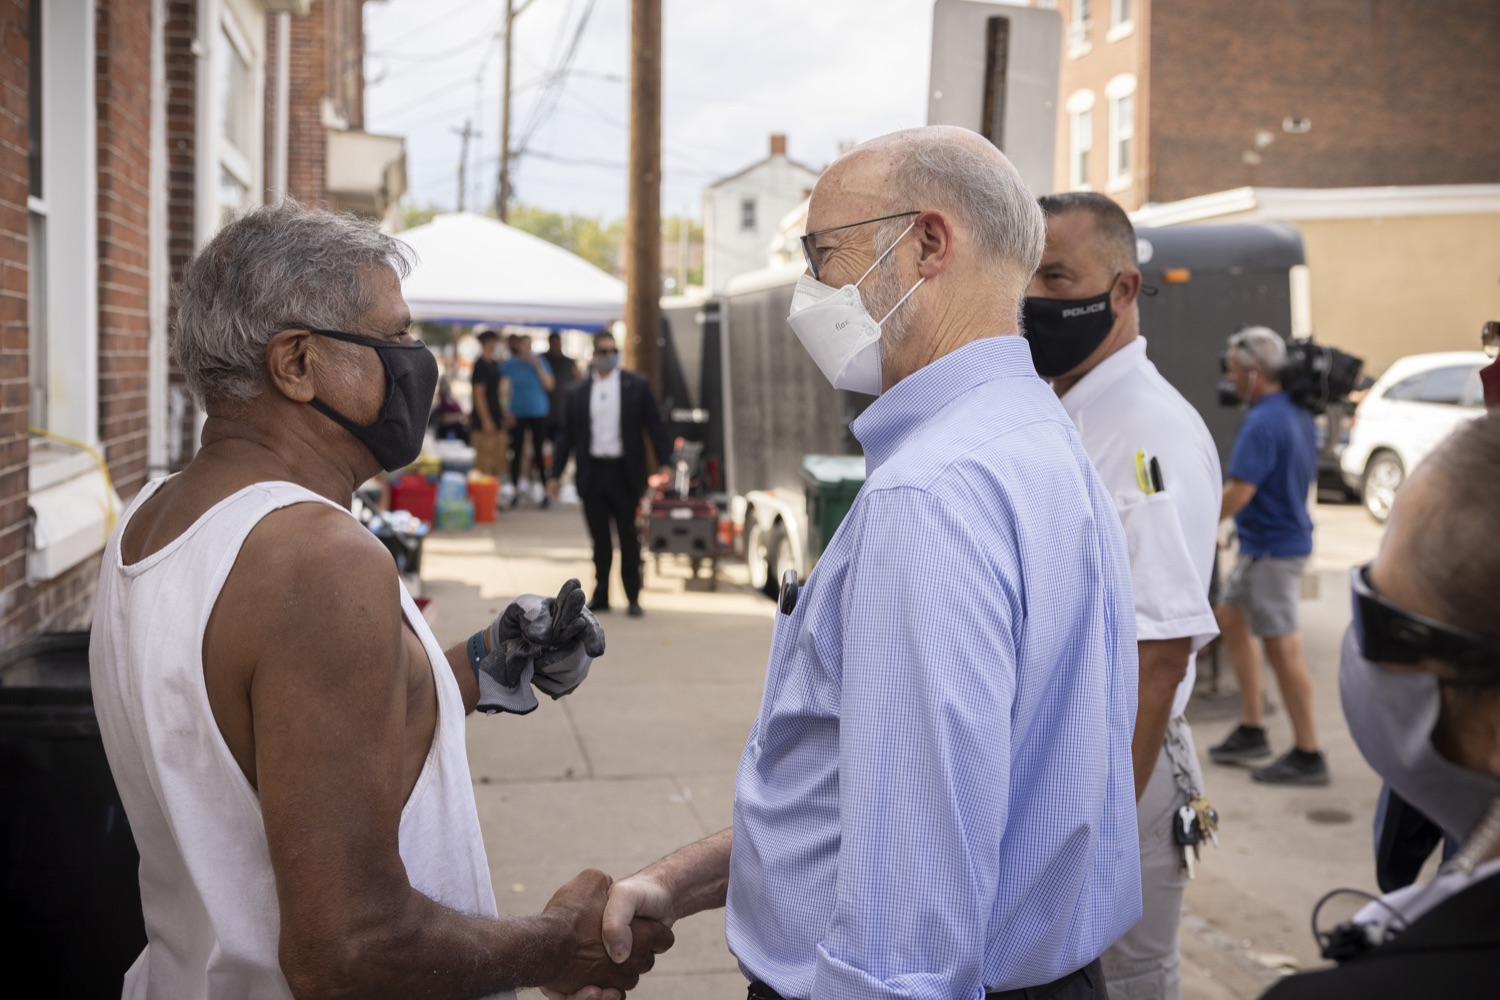 """<a href=""""https://filesource.wostreaming.net/commonwealthofpa/photo/19109_gov_stormDamage_dz_013.jpg"""" target=""""_blank"""">⇣Download Photo<br></a>Pennsylvania Governor Tom Wolf speaking with residents while touring storm damage.   Governor Wolf visited the Borough of Bridgeport to tour some of the areas affected by the remnants of Ida. The governor, joined by local officials, viewed and discussed the impact to damaged areas, including businesses, homes and infrastructure. Bridgeport, PA - September 08, 2021"""